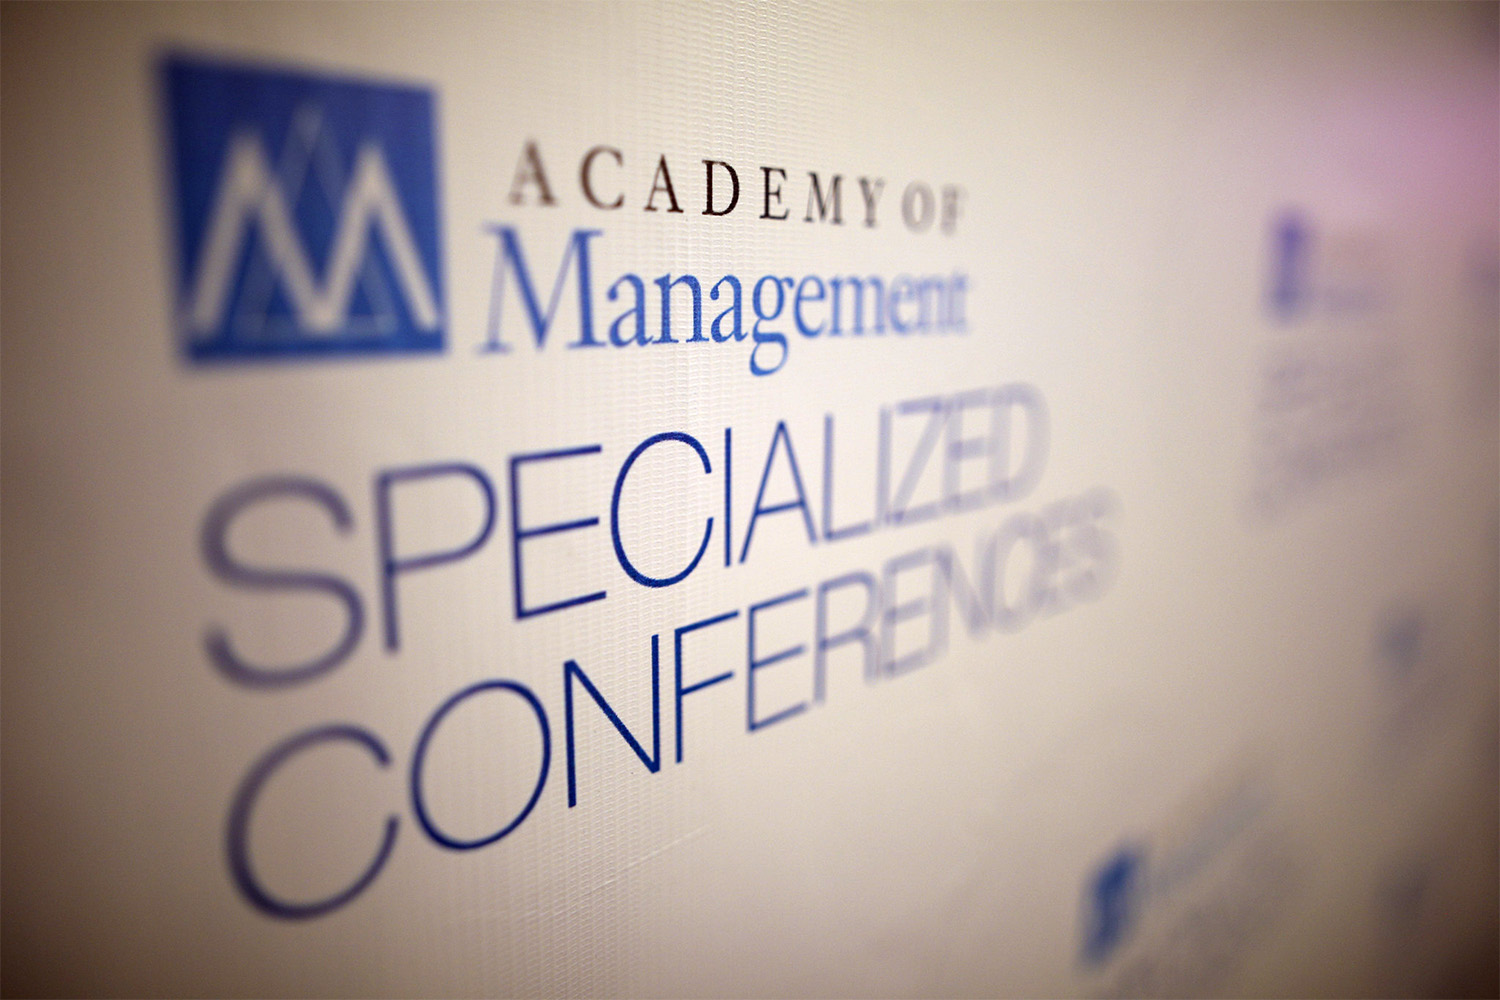 AOM Specialized Conferences